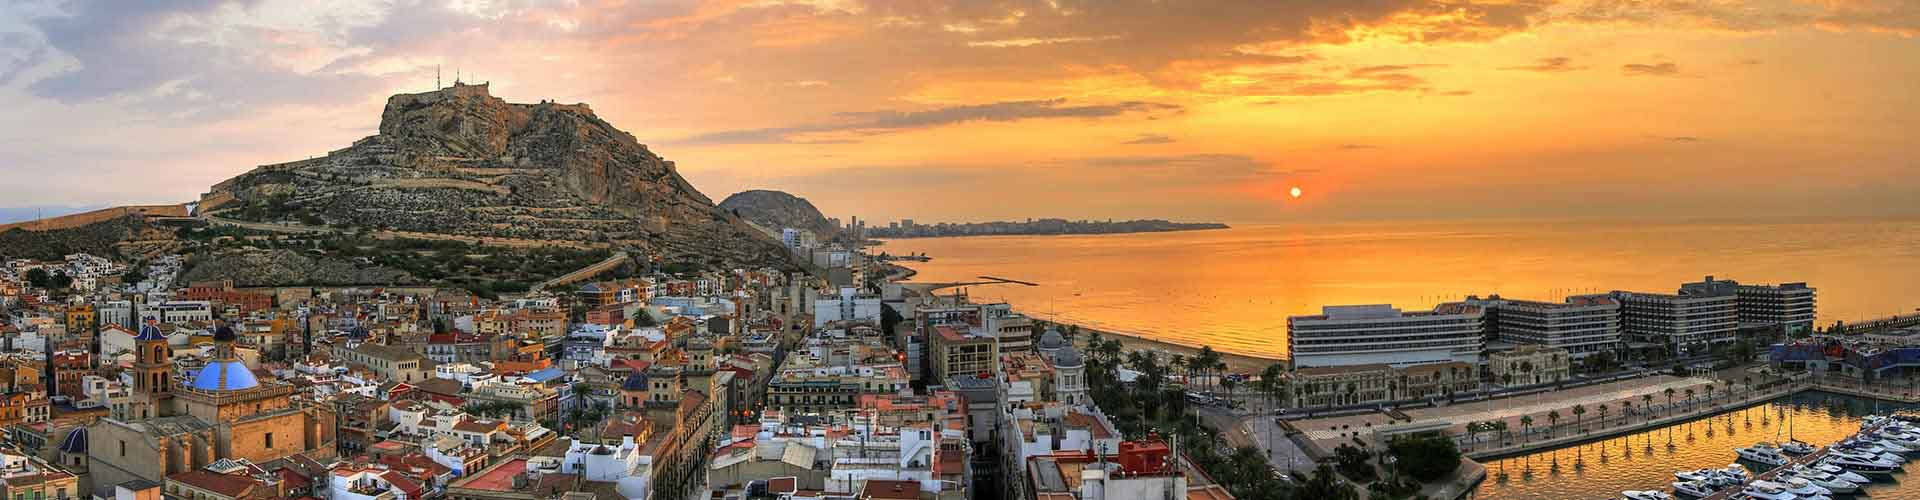 Alicante – Cheap Rooms in Albufereta. Maps of Alicante, Photos and Reviews for each cheap room in Alicante.